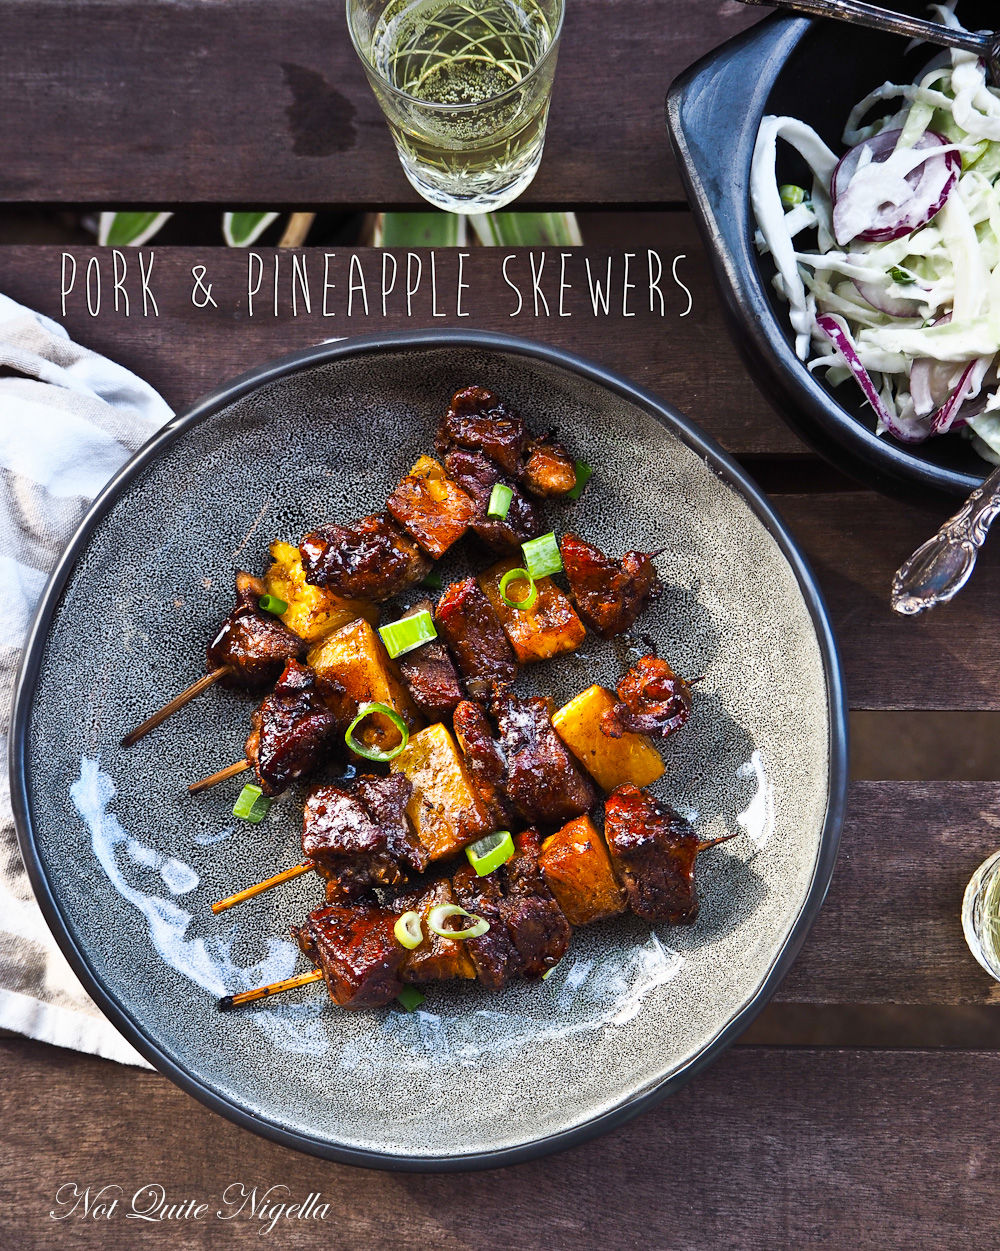 Pork Pineapple Skewers